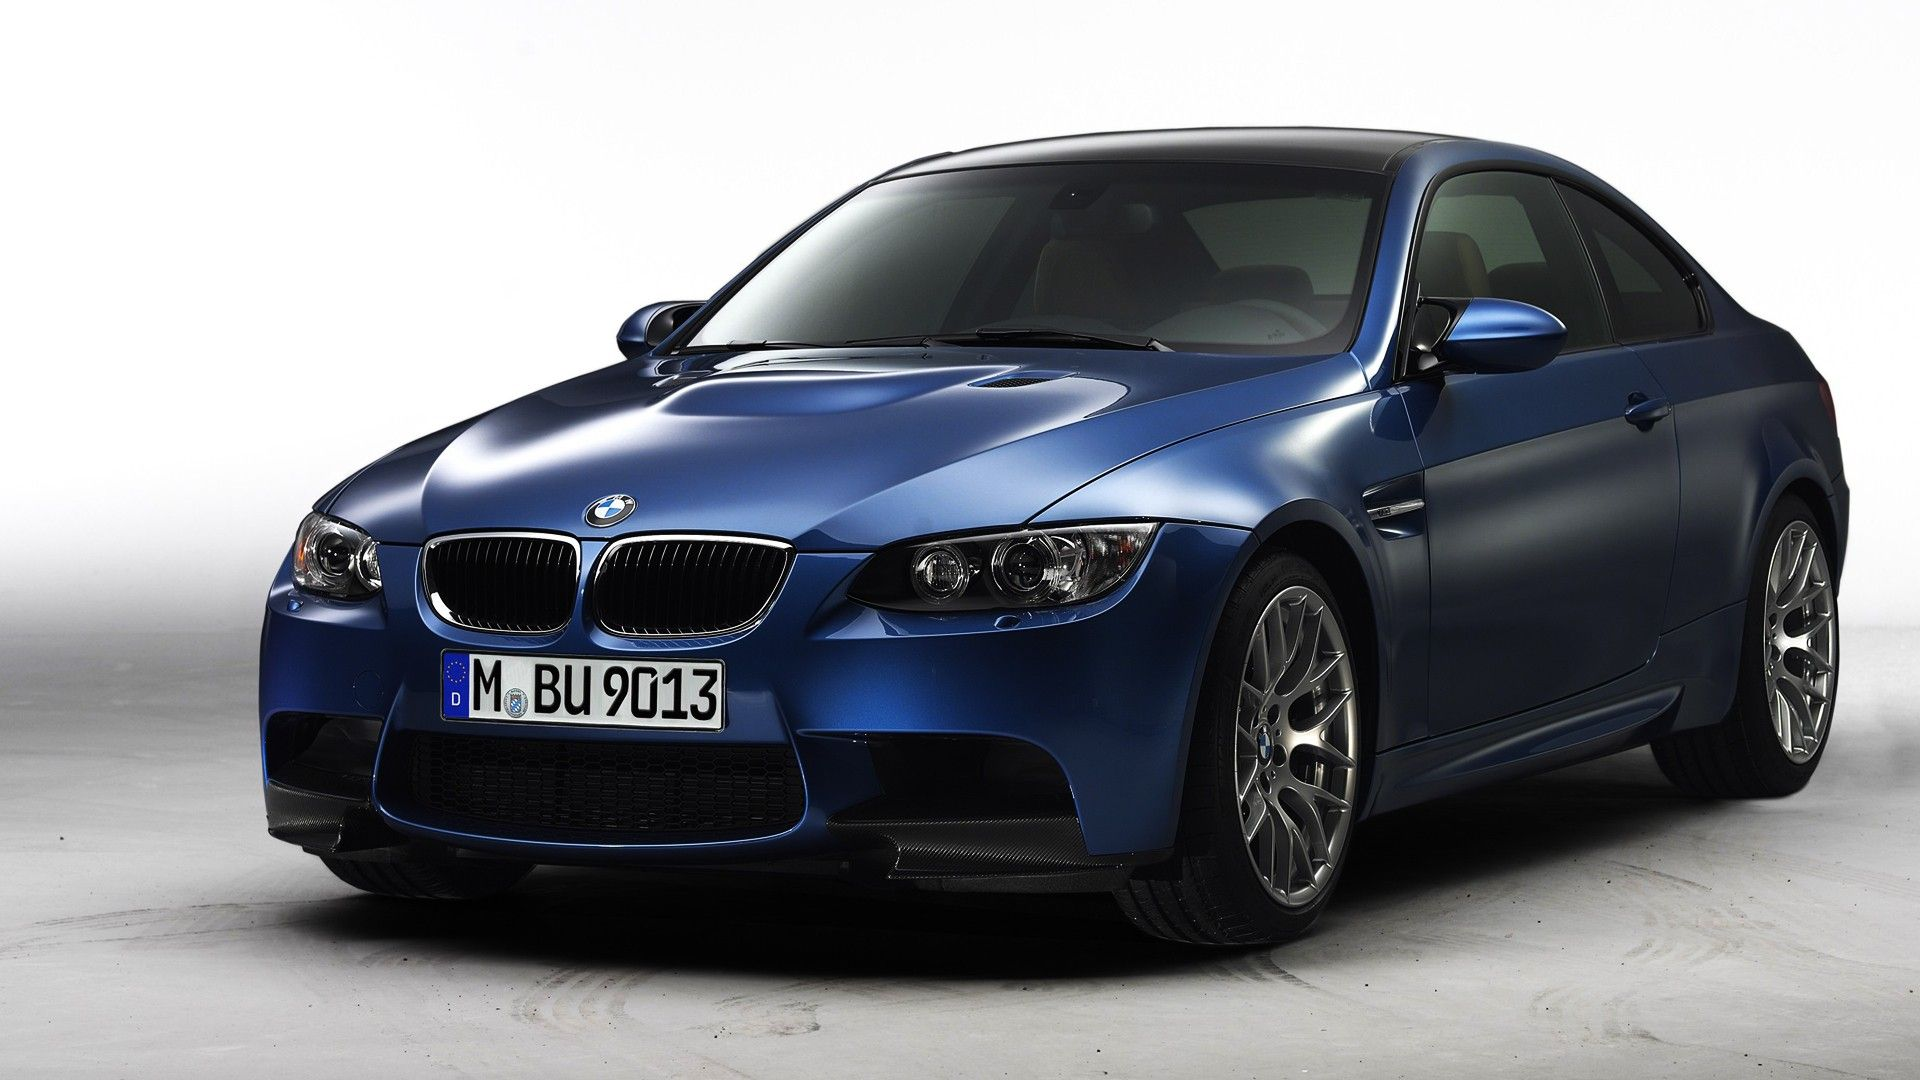 High Quality Image For Beautiful Bmw Car Wallpaper HD Places To Visit